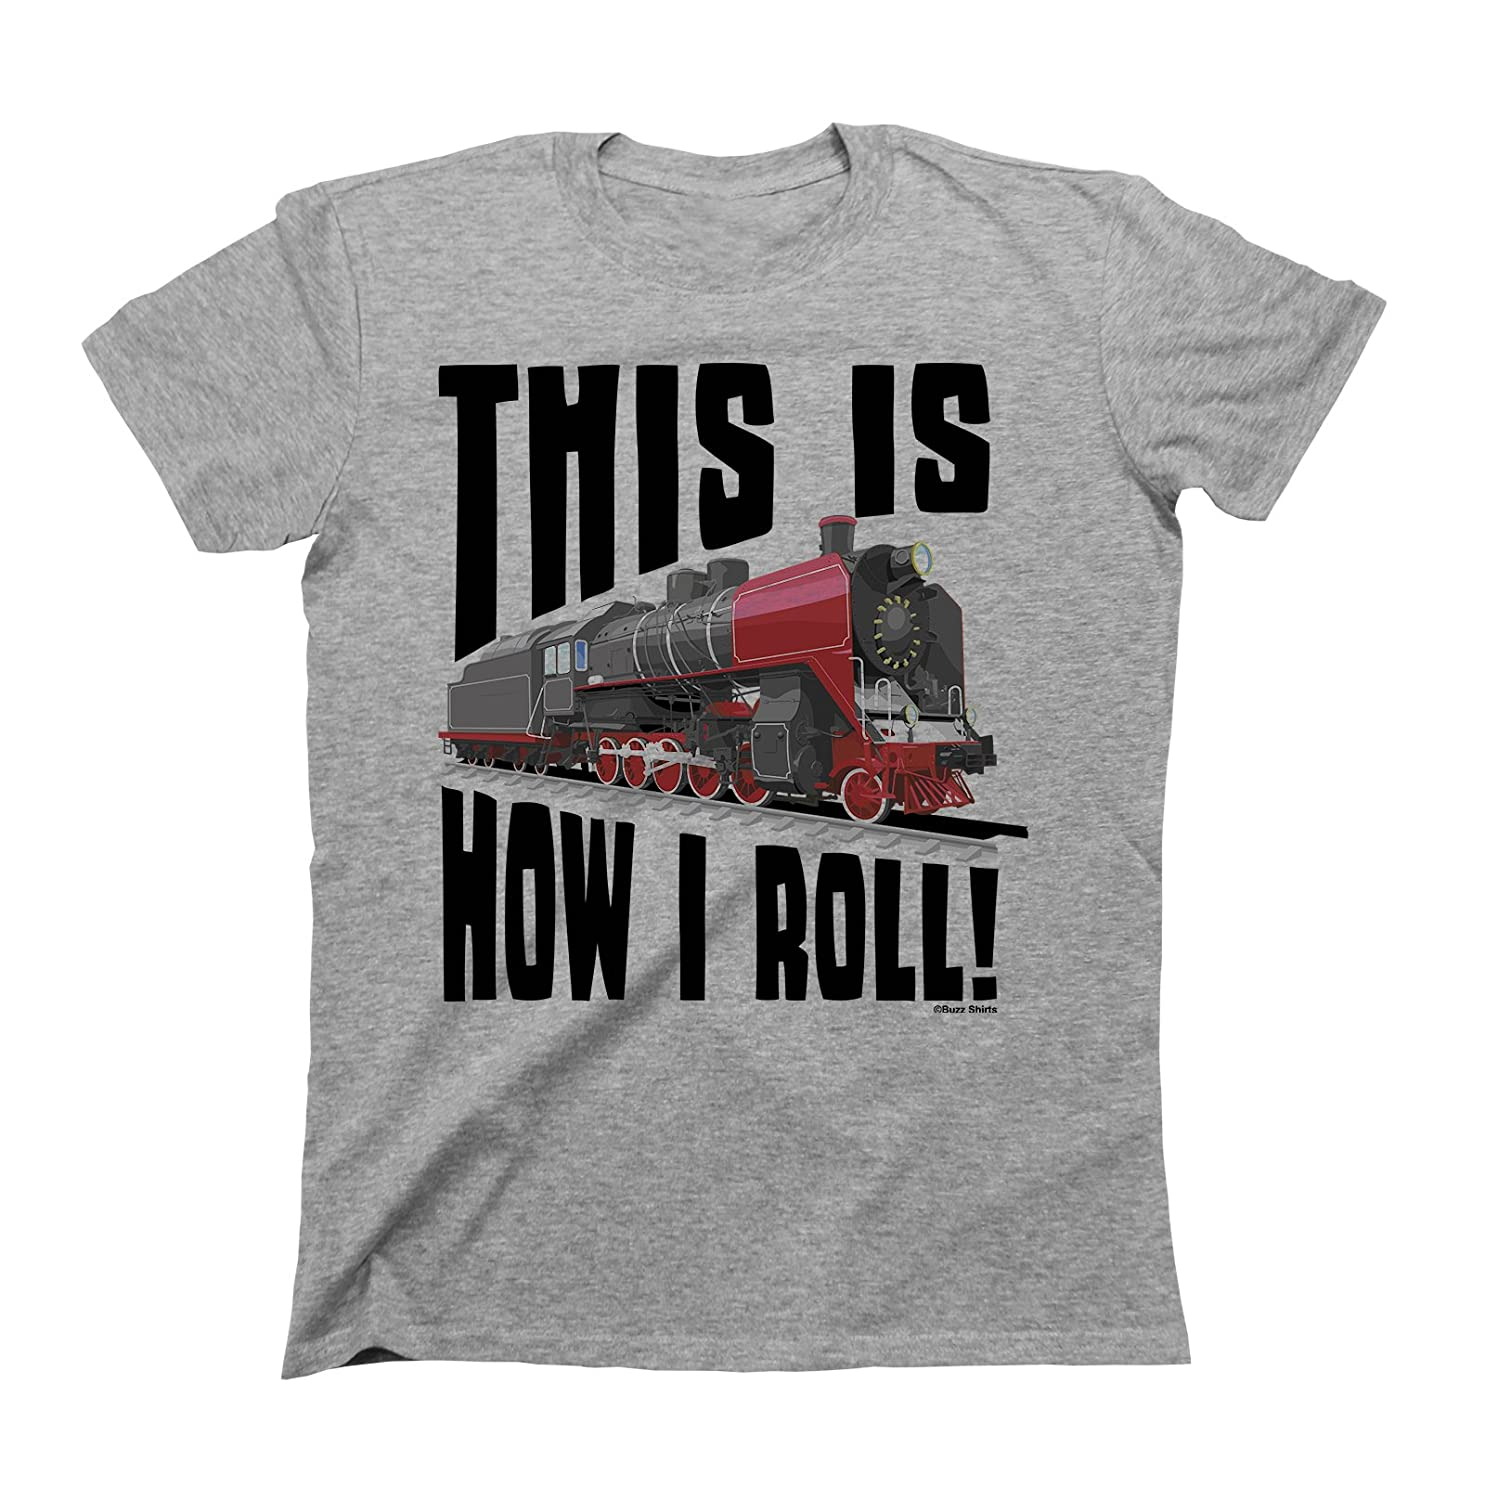 This Is how I Roll Train T-Shirt Boys Girls Kids Unisex Fit Buzz Shirts